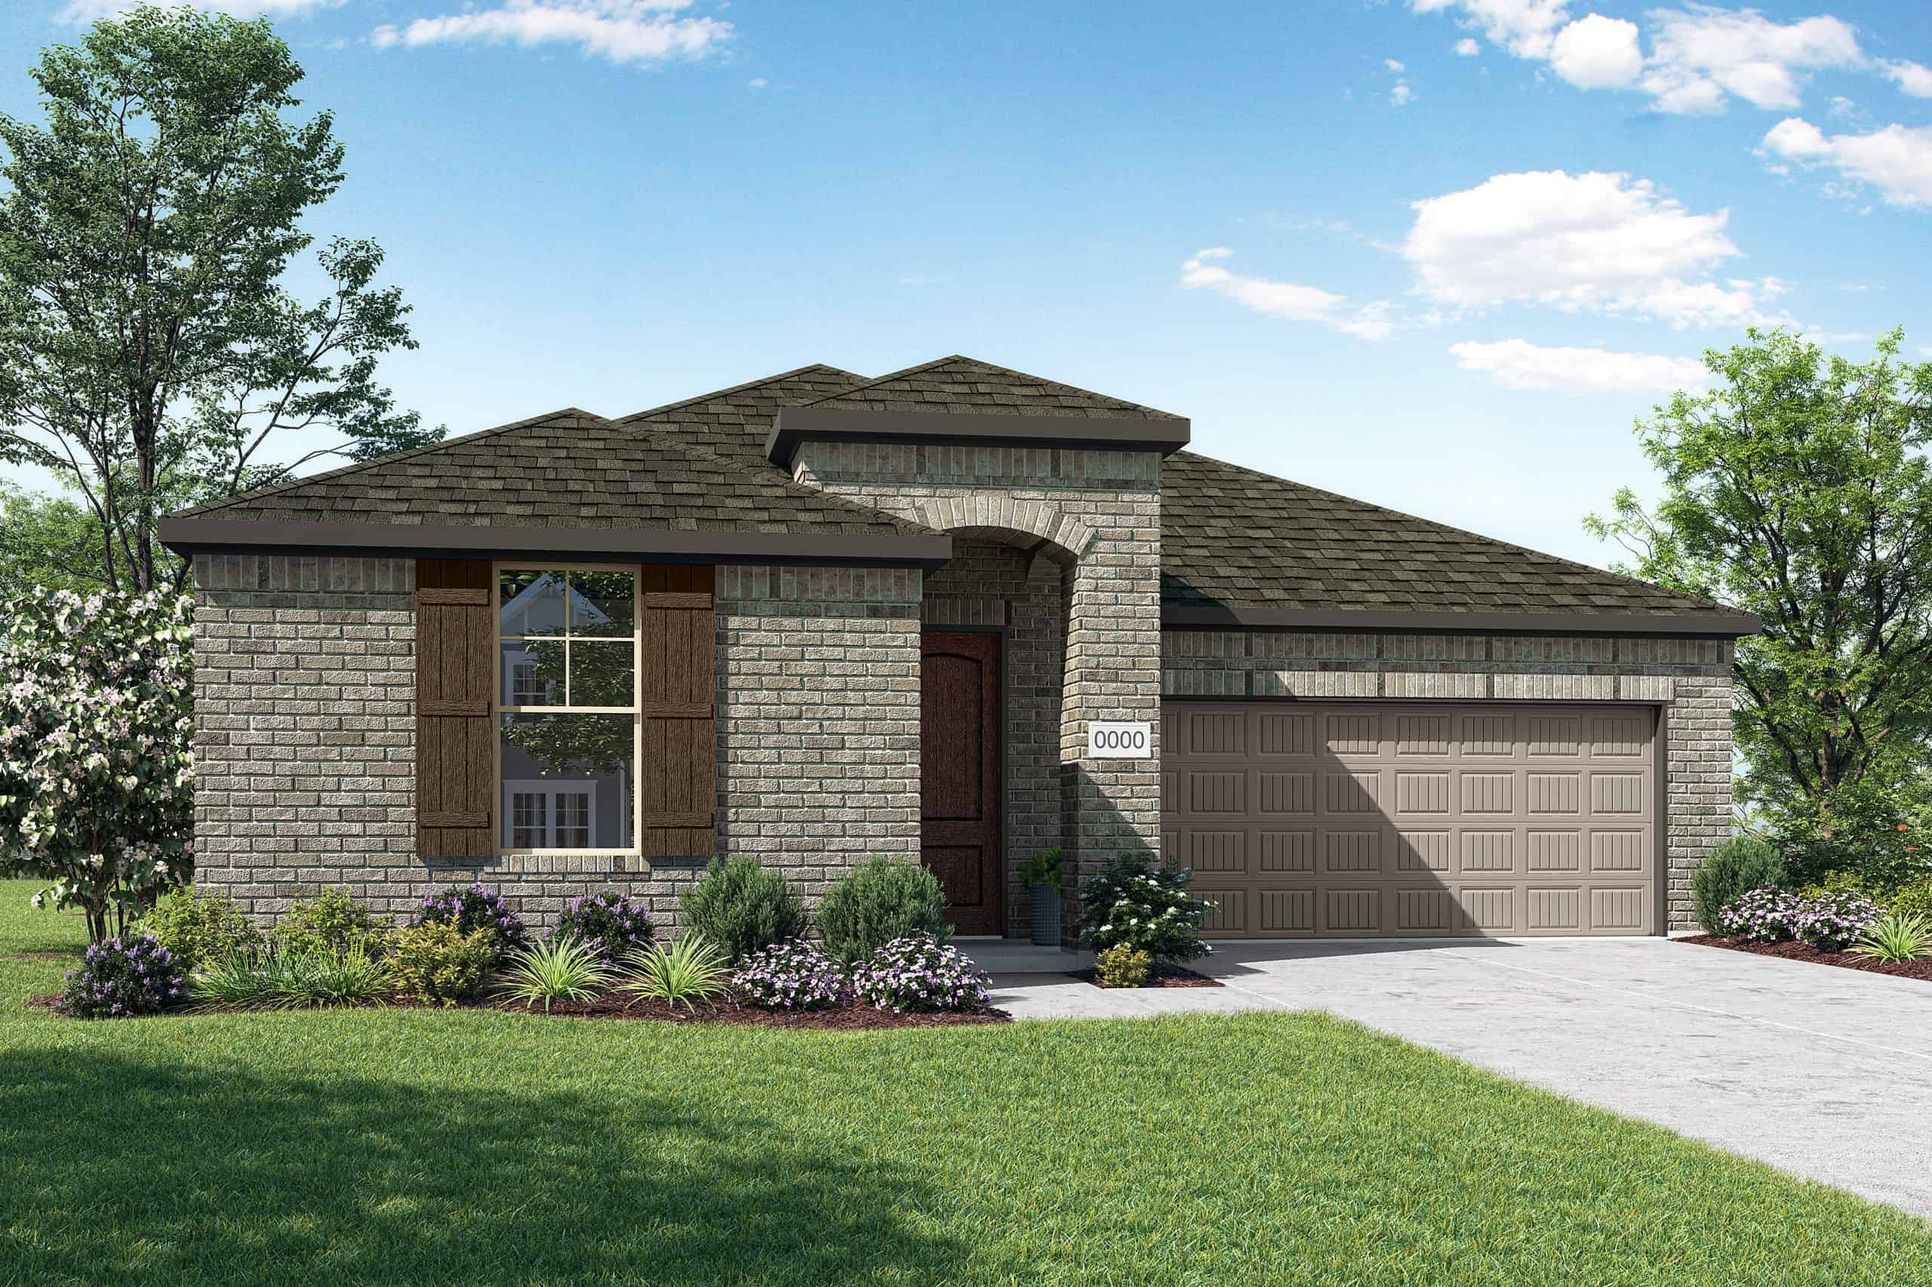 Elevation A:Elevation A is a single story traditional full brick home design with an arched entry and cedar shin